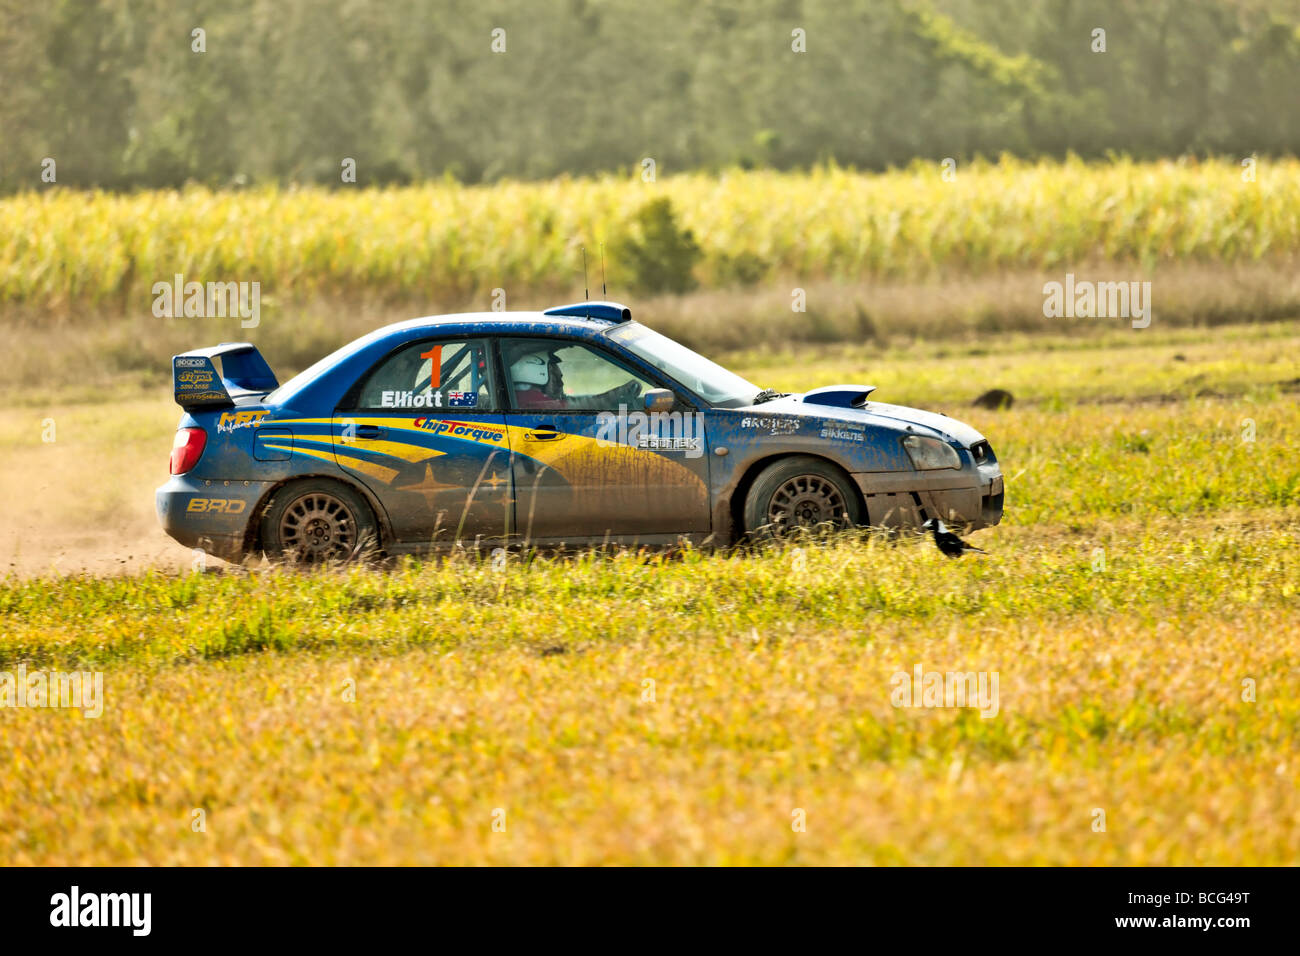 Subaru WRX rally car doing circuits on a dirt track Stock